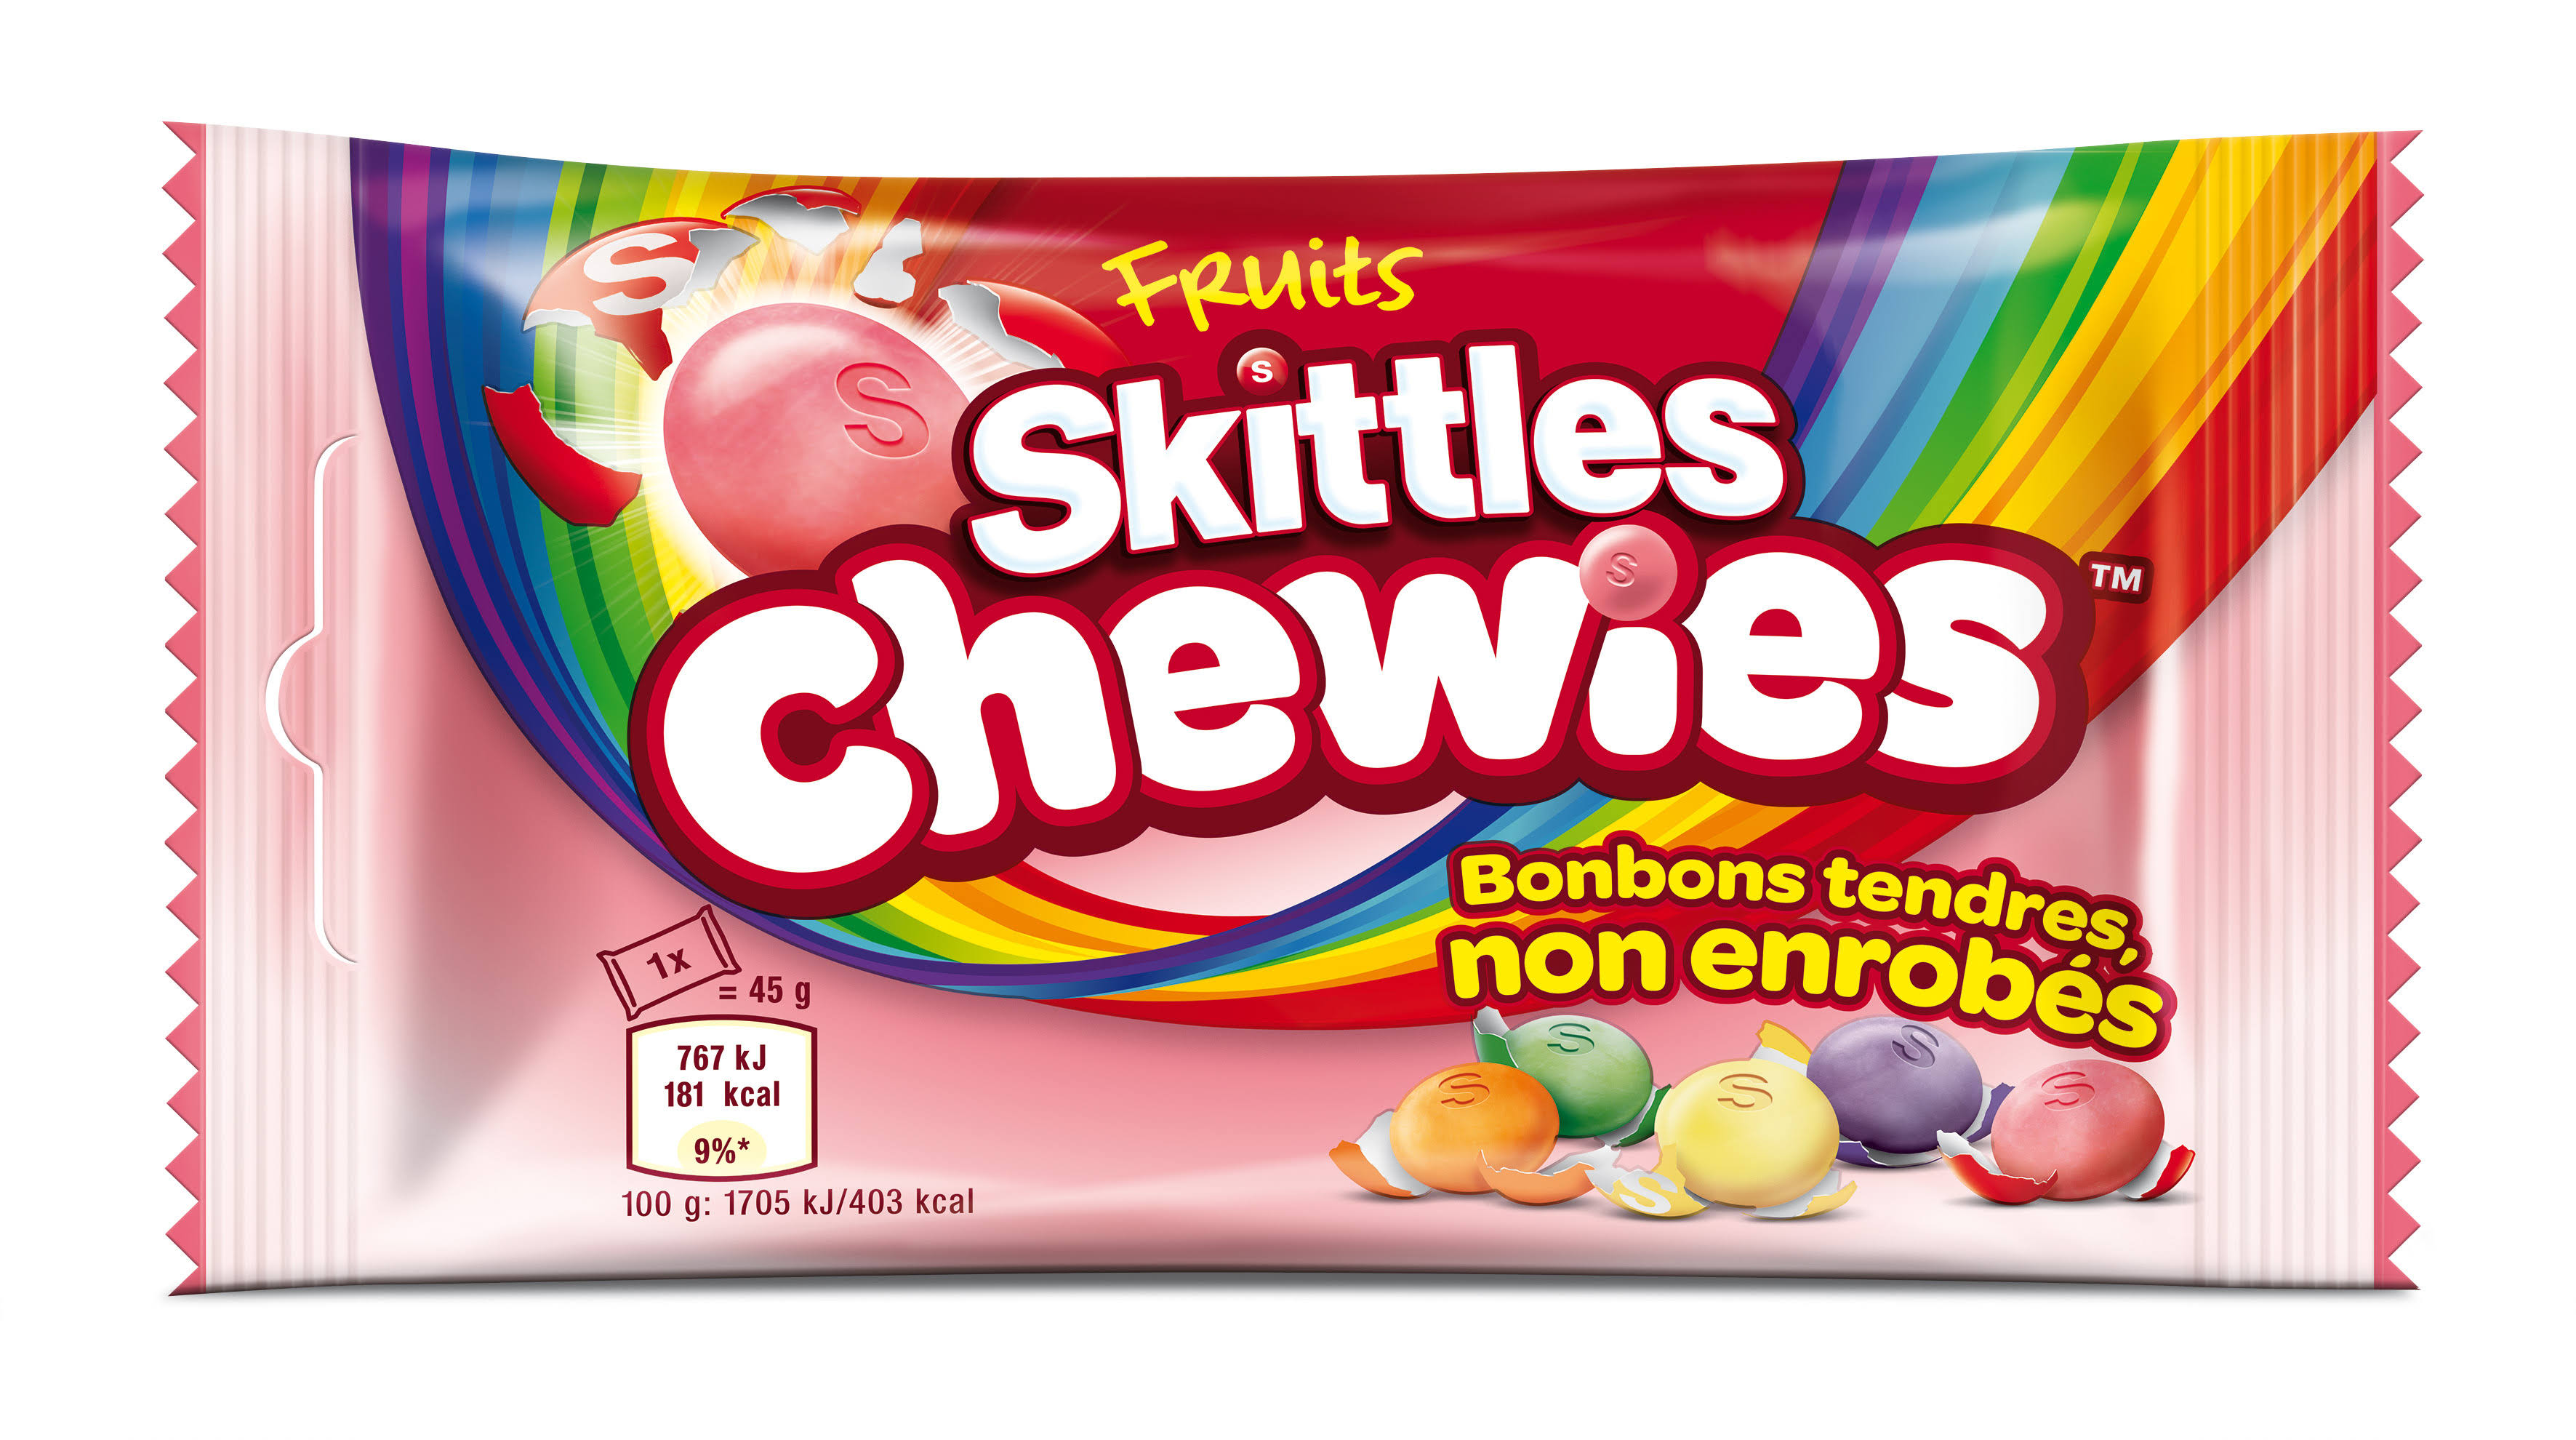 Skittles Chewies Fruits Sweets - 45g